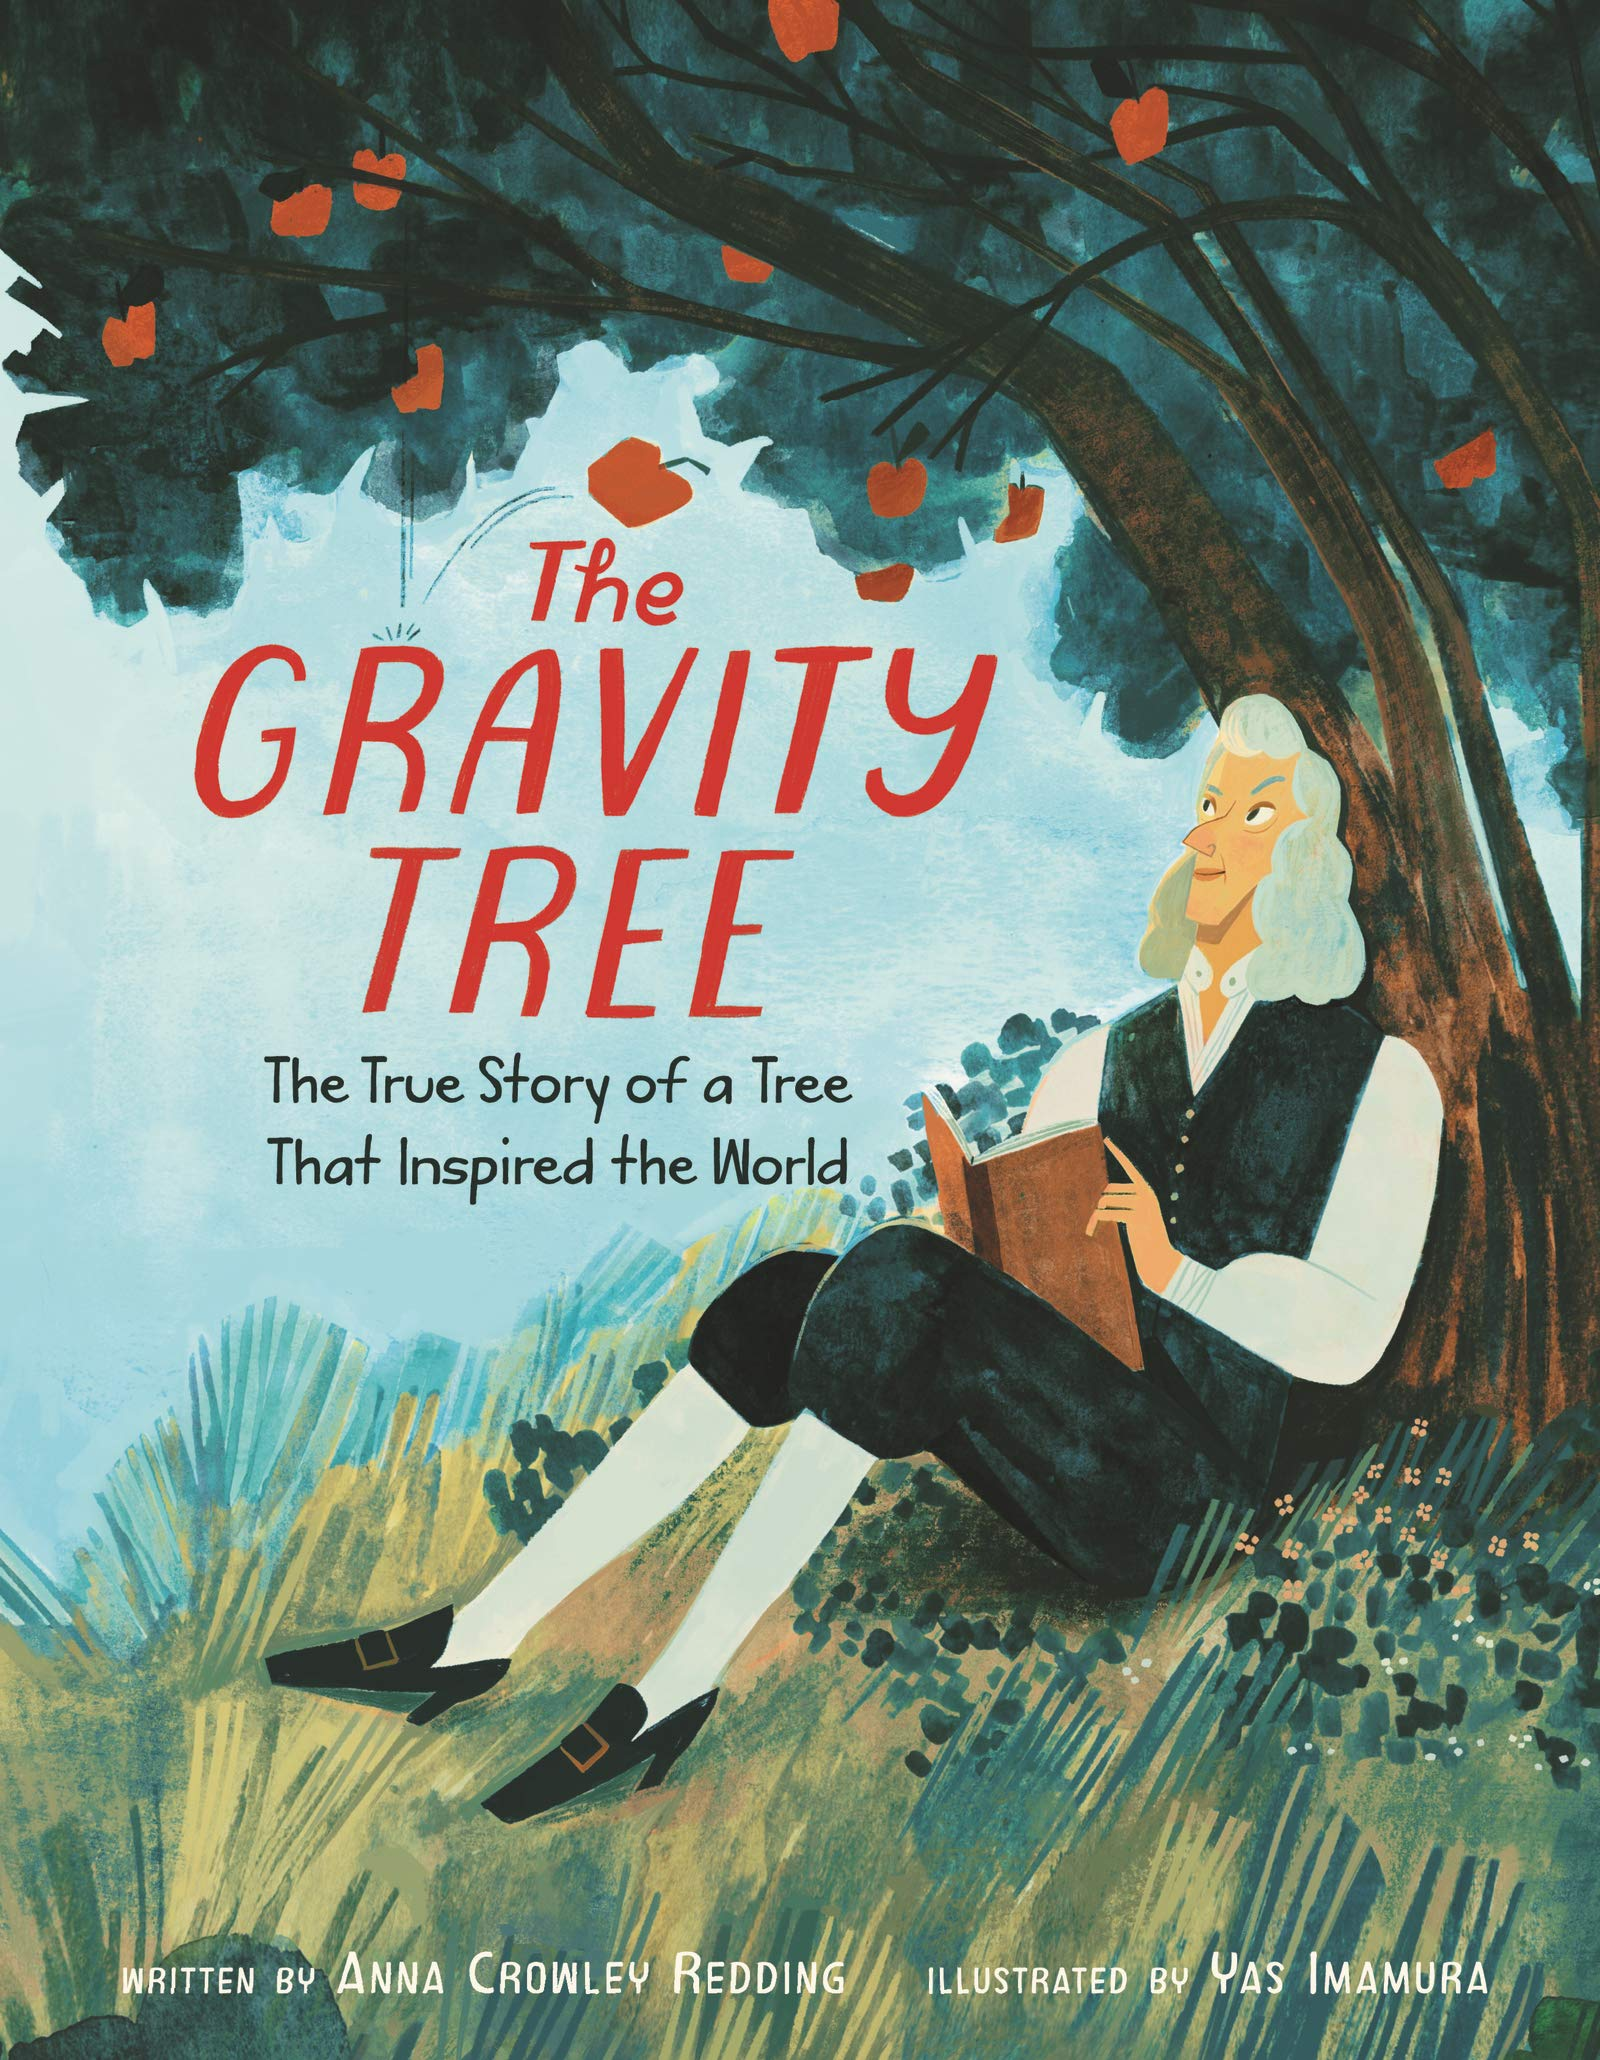 Amazon.com: The Gravity Tree: The True Story of a Tree That Inspired the  World (9780062967367): Redding, Anna Crowley, Imamura, Yas: Books